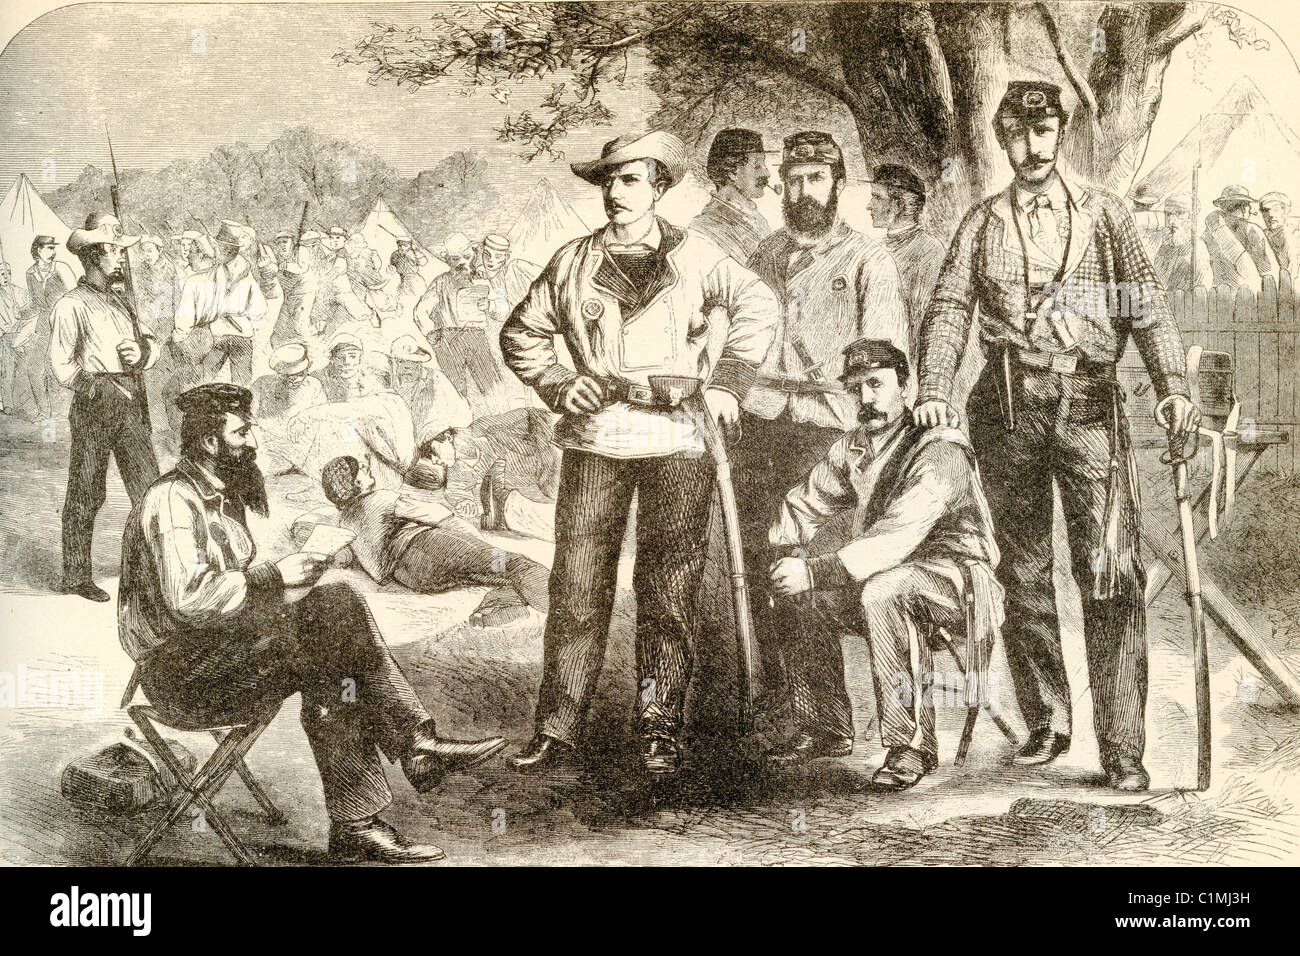 Old lithograph of american civil war soldiers stock photo 35488645 old lithograph of american civil war soldiers altavistaventures Gallery